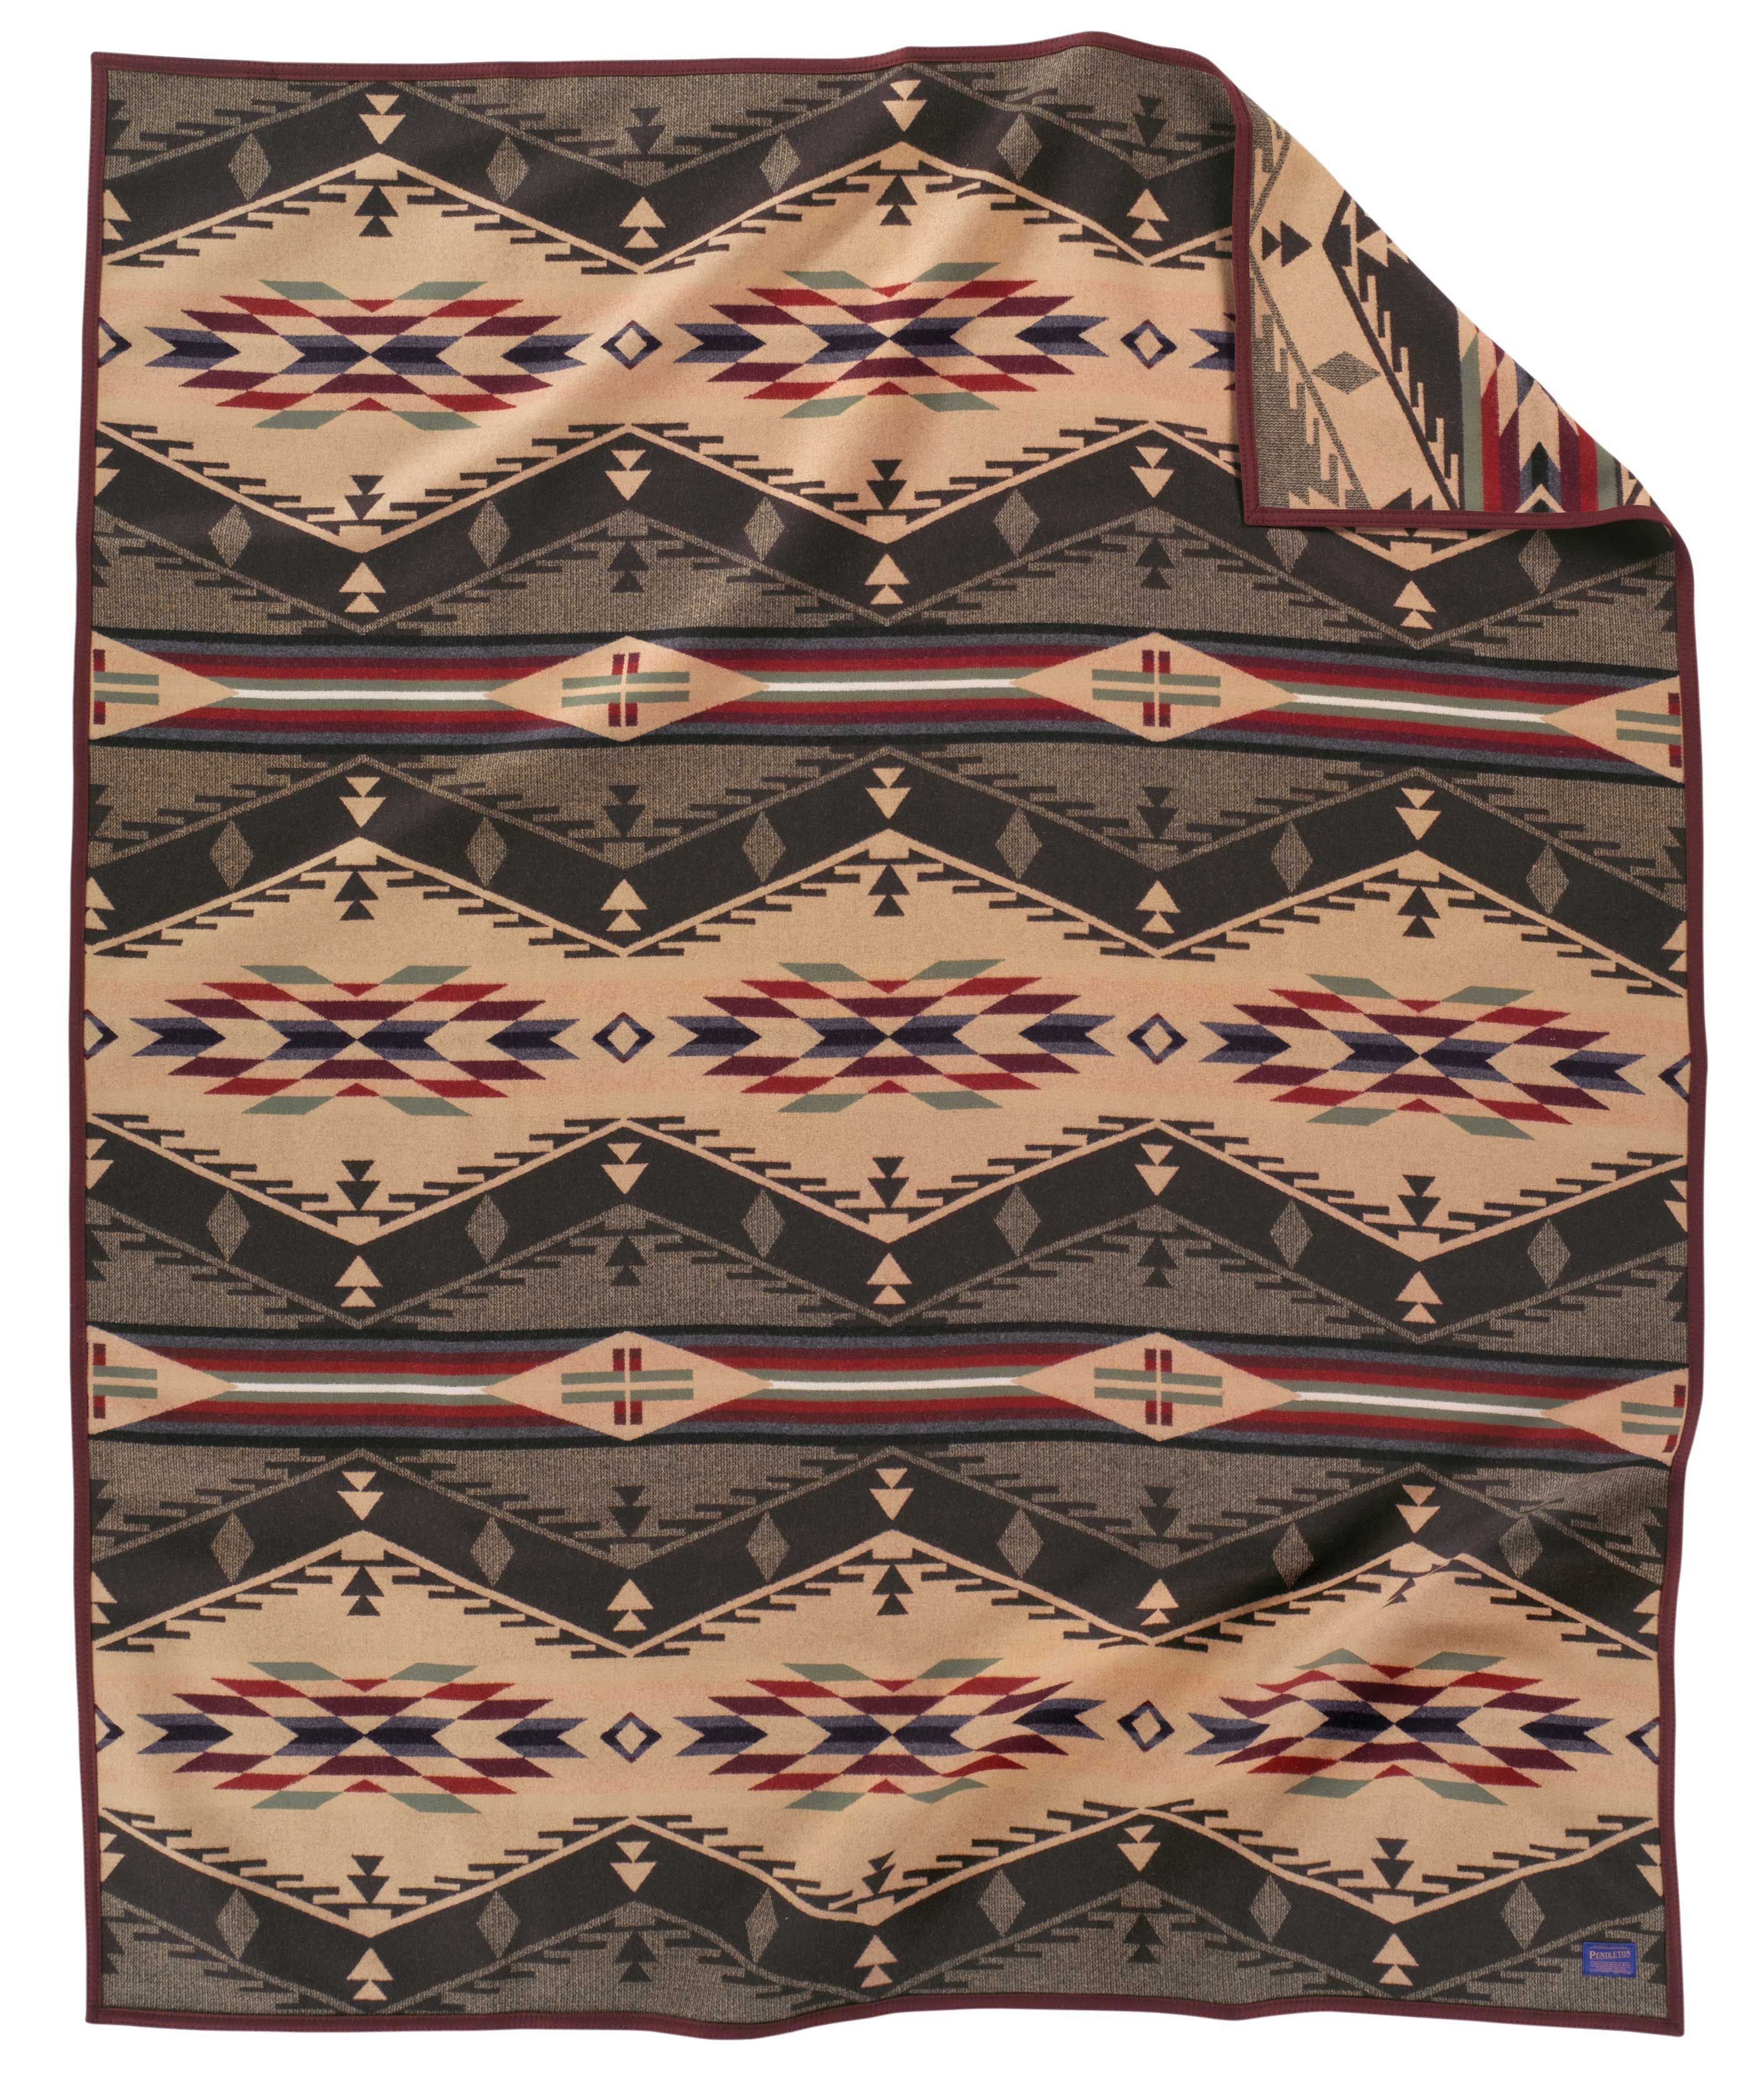 Spirit of the Peoples Blanket